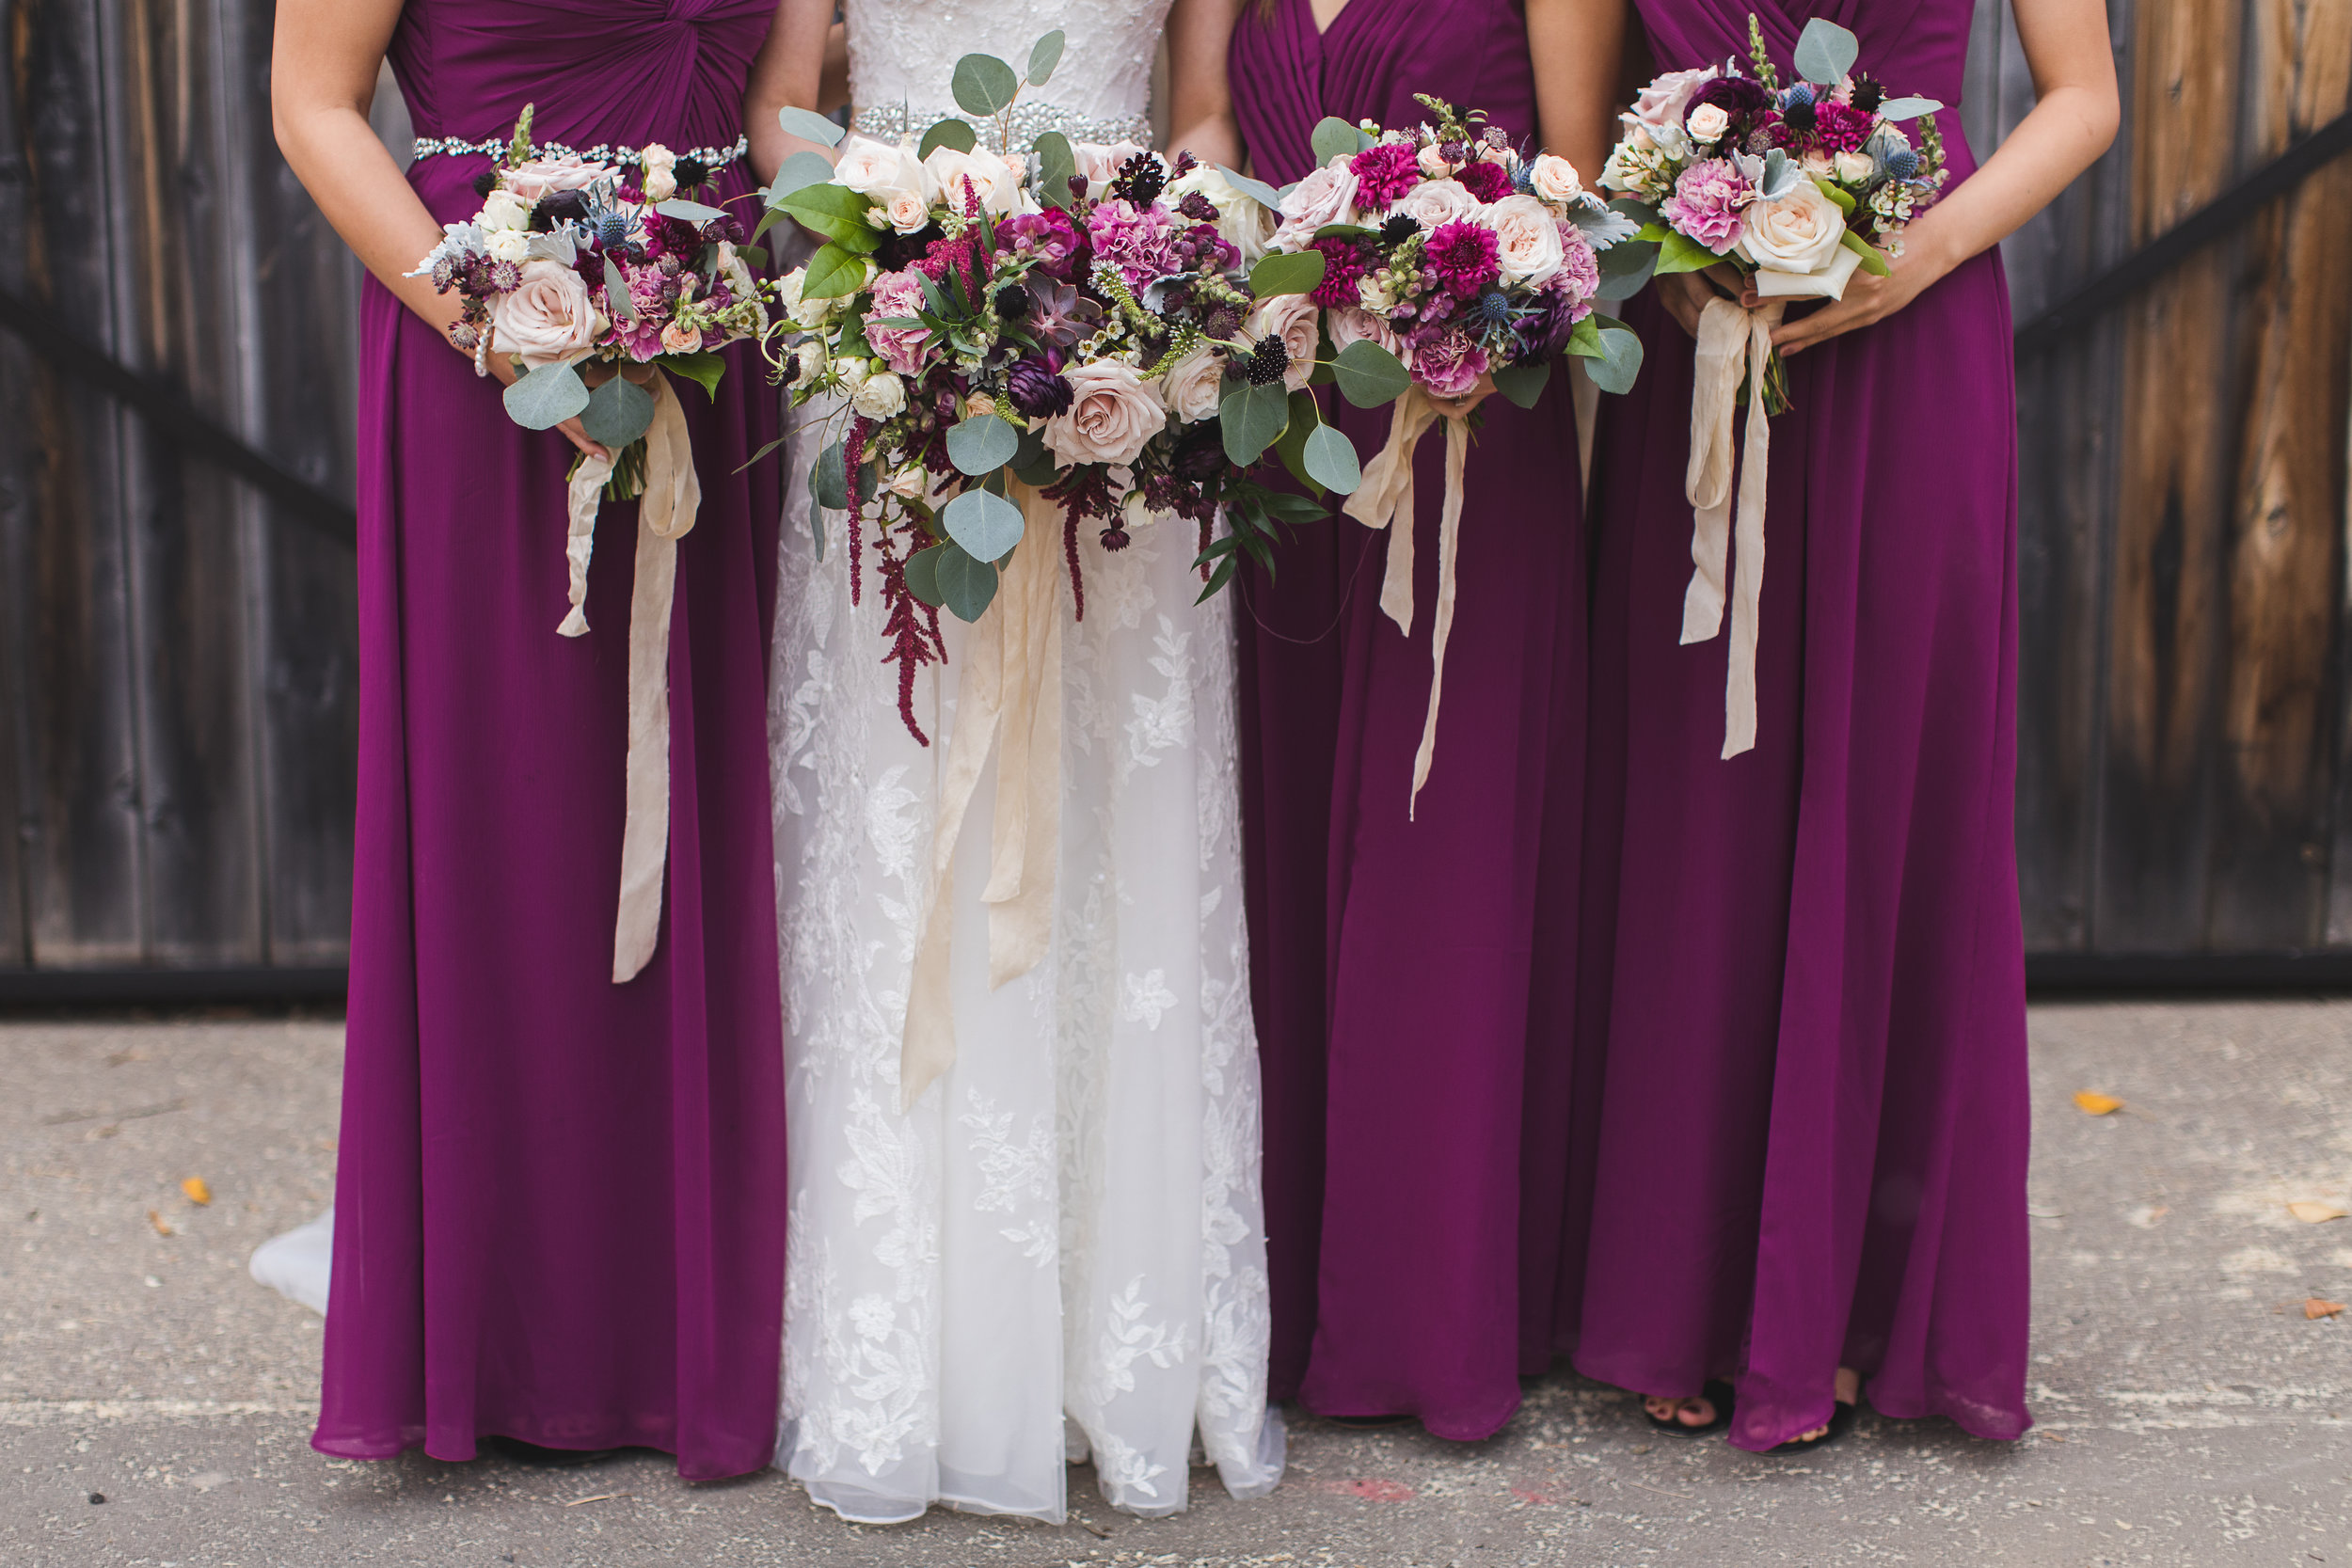 Bridal Party Bouquet Inspiration: 8 Bouquet Pictures Sure to Get You in the Mood For Wedding Season - Theresa Lopez on the Bronte Bride Blog